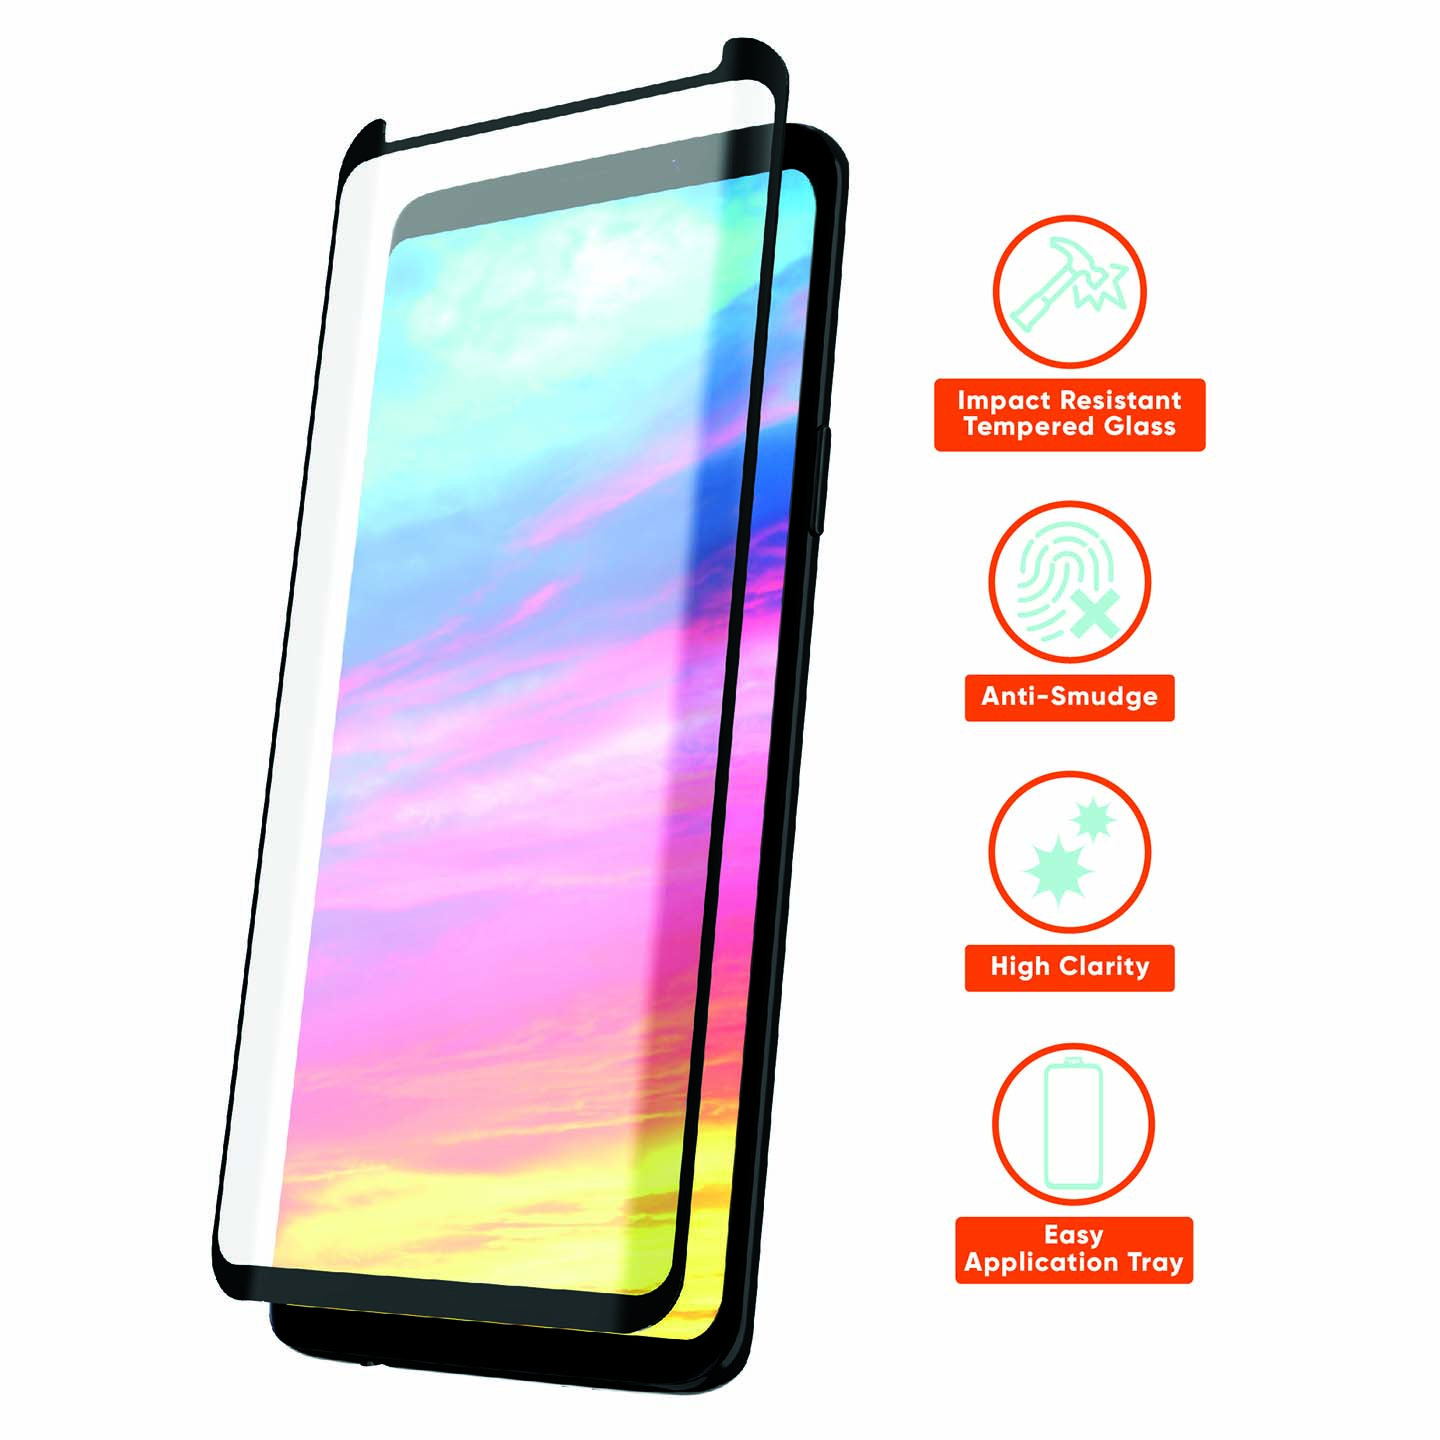 WanShiHengTong Screen GGR 50 PCS Non-Full Matte Frosted Tempered Glass Film for Galaxy J4 No Retail Package Clear